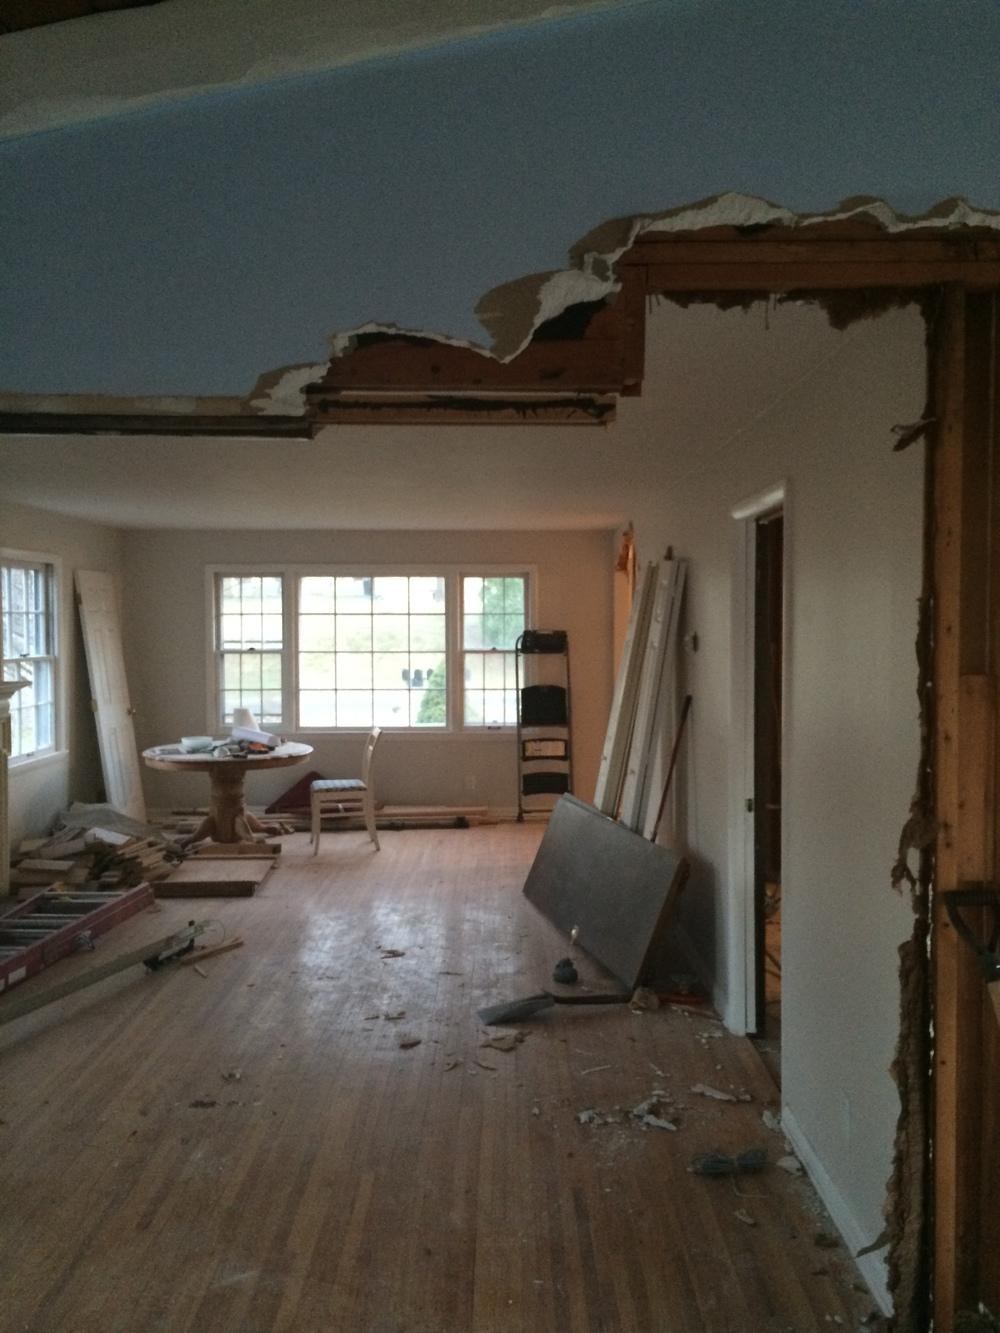 This photo was taken in the midst of opening up the pocket door entry into the living room!